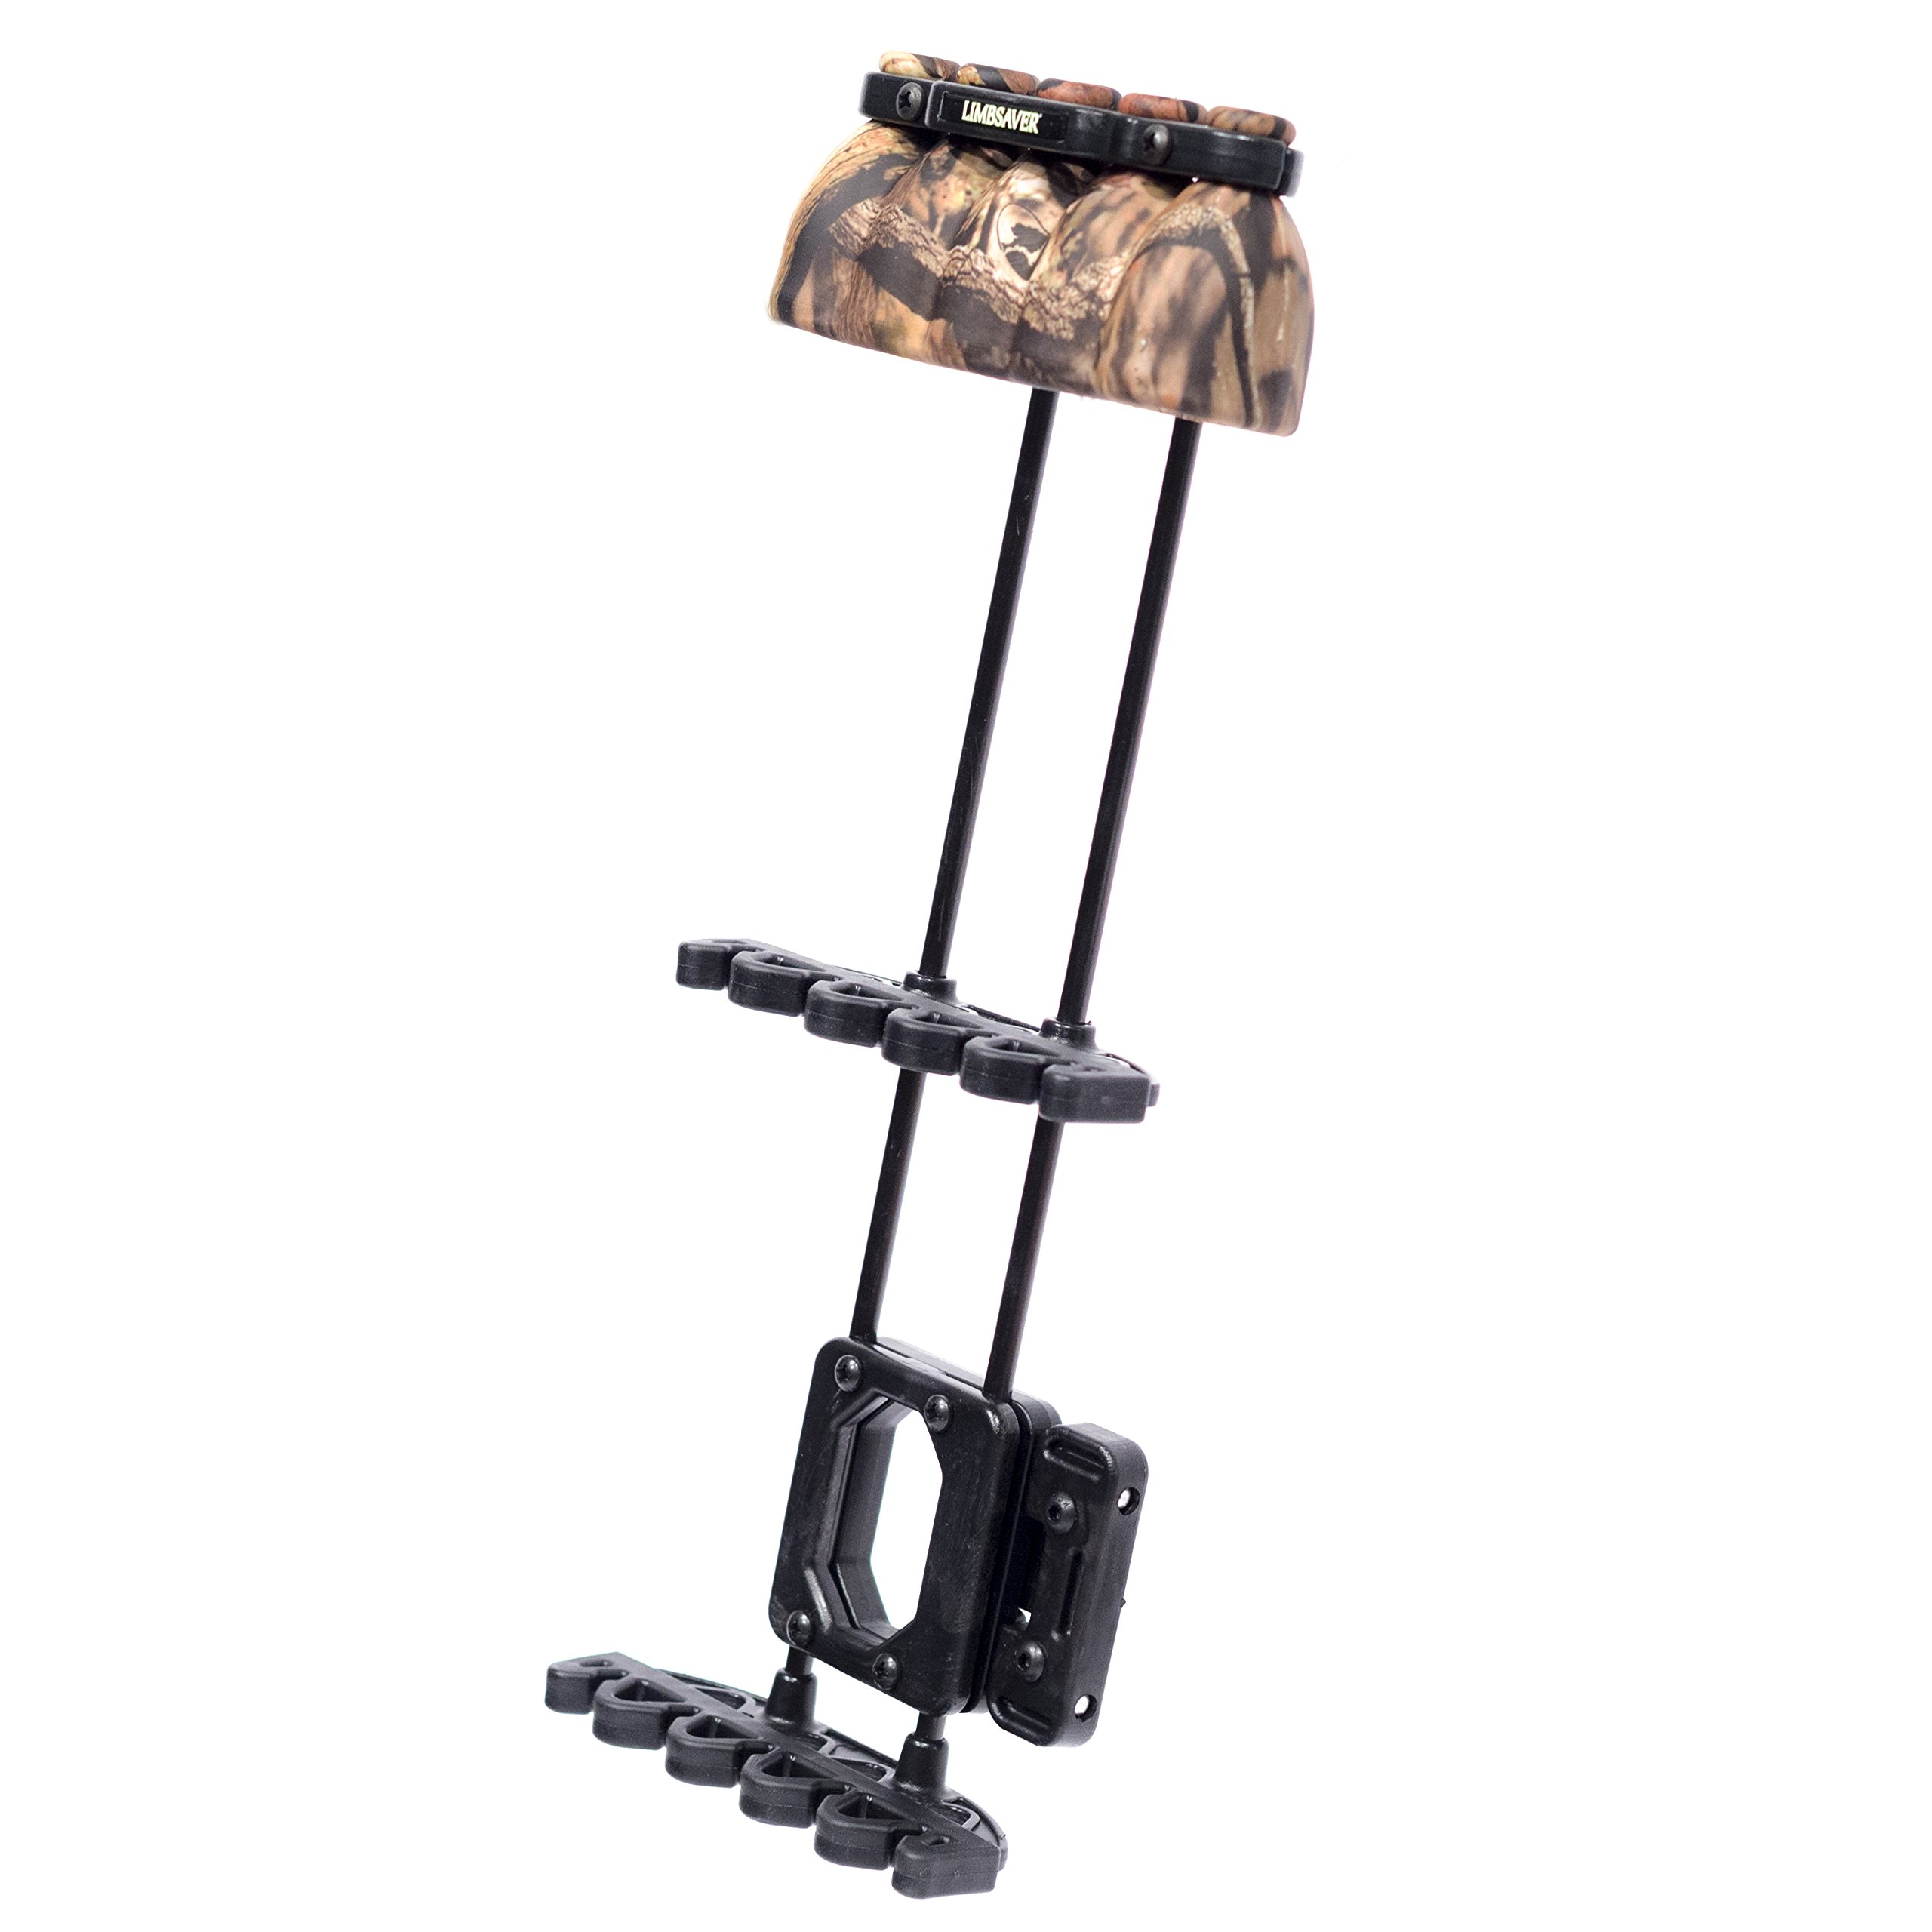 Limbsaver Silent Quiver One Piece Infinity, Mossy Oak Breakup Camo